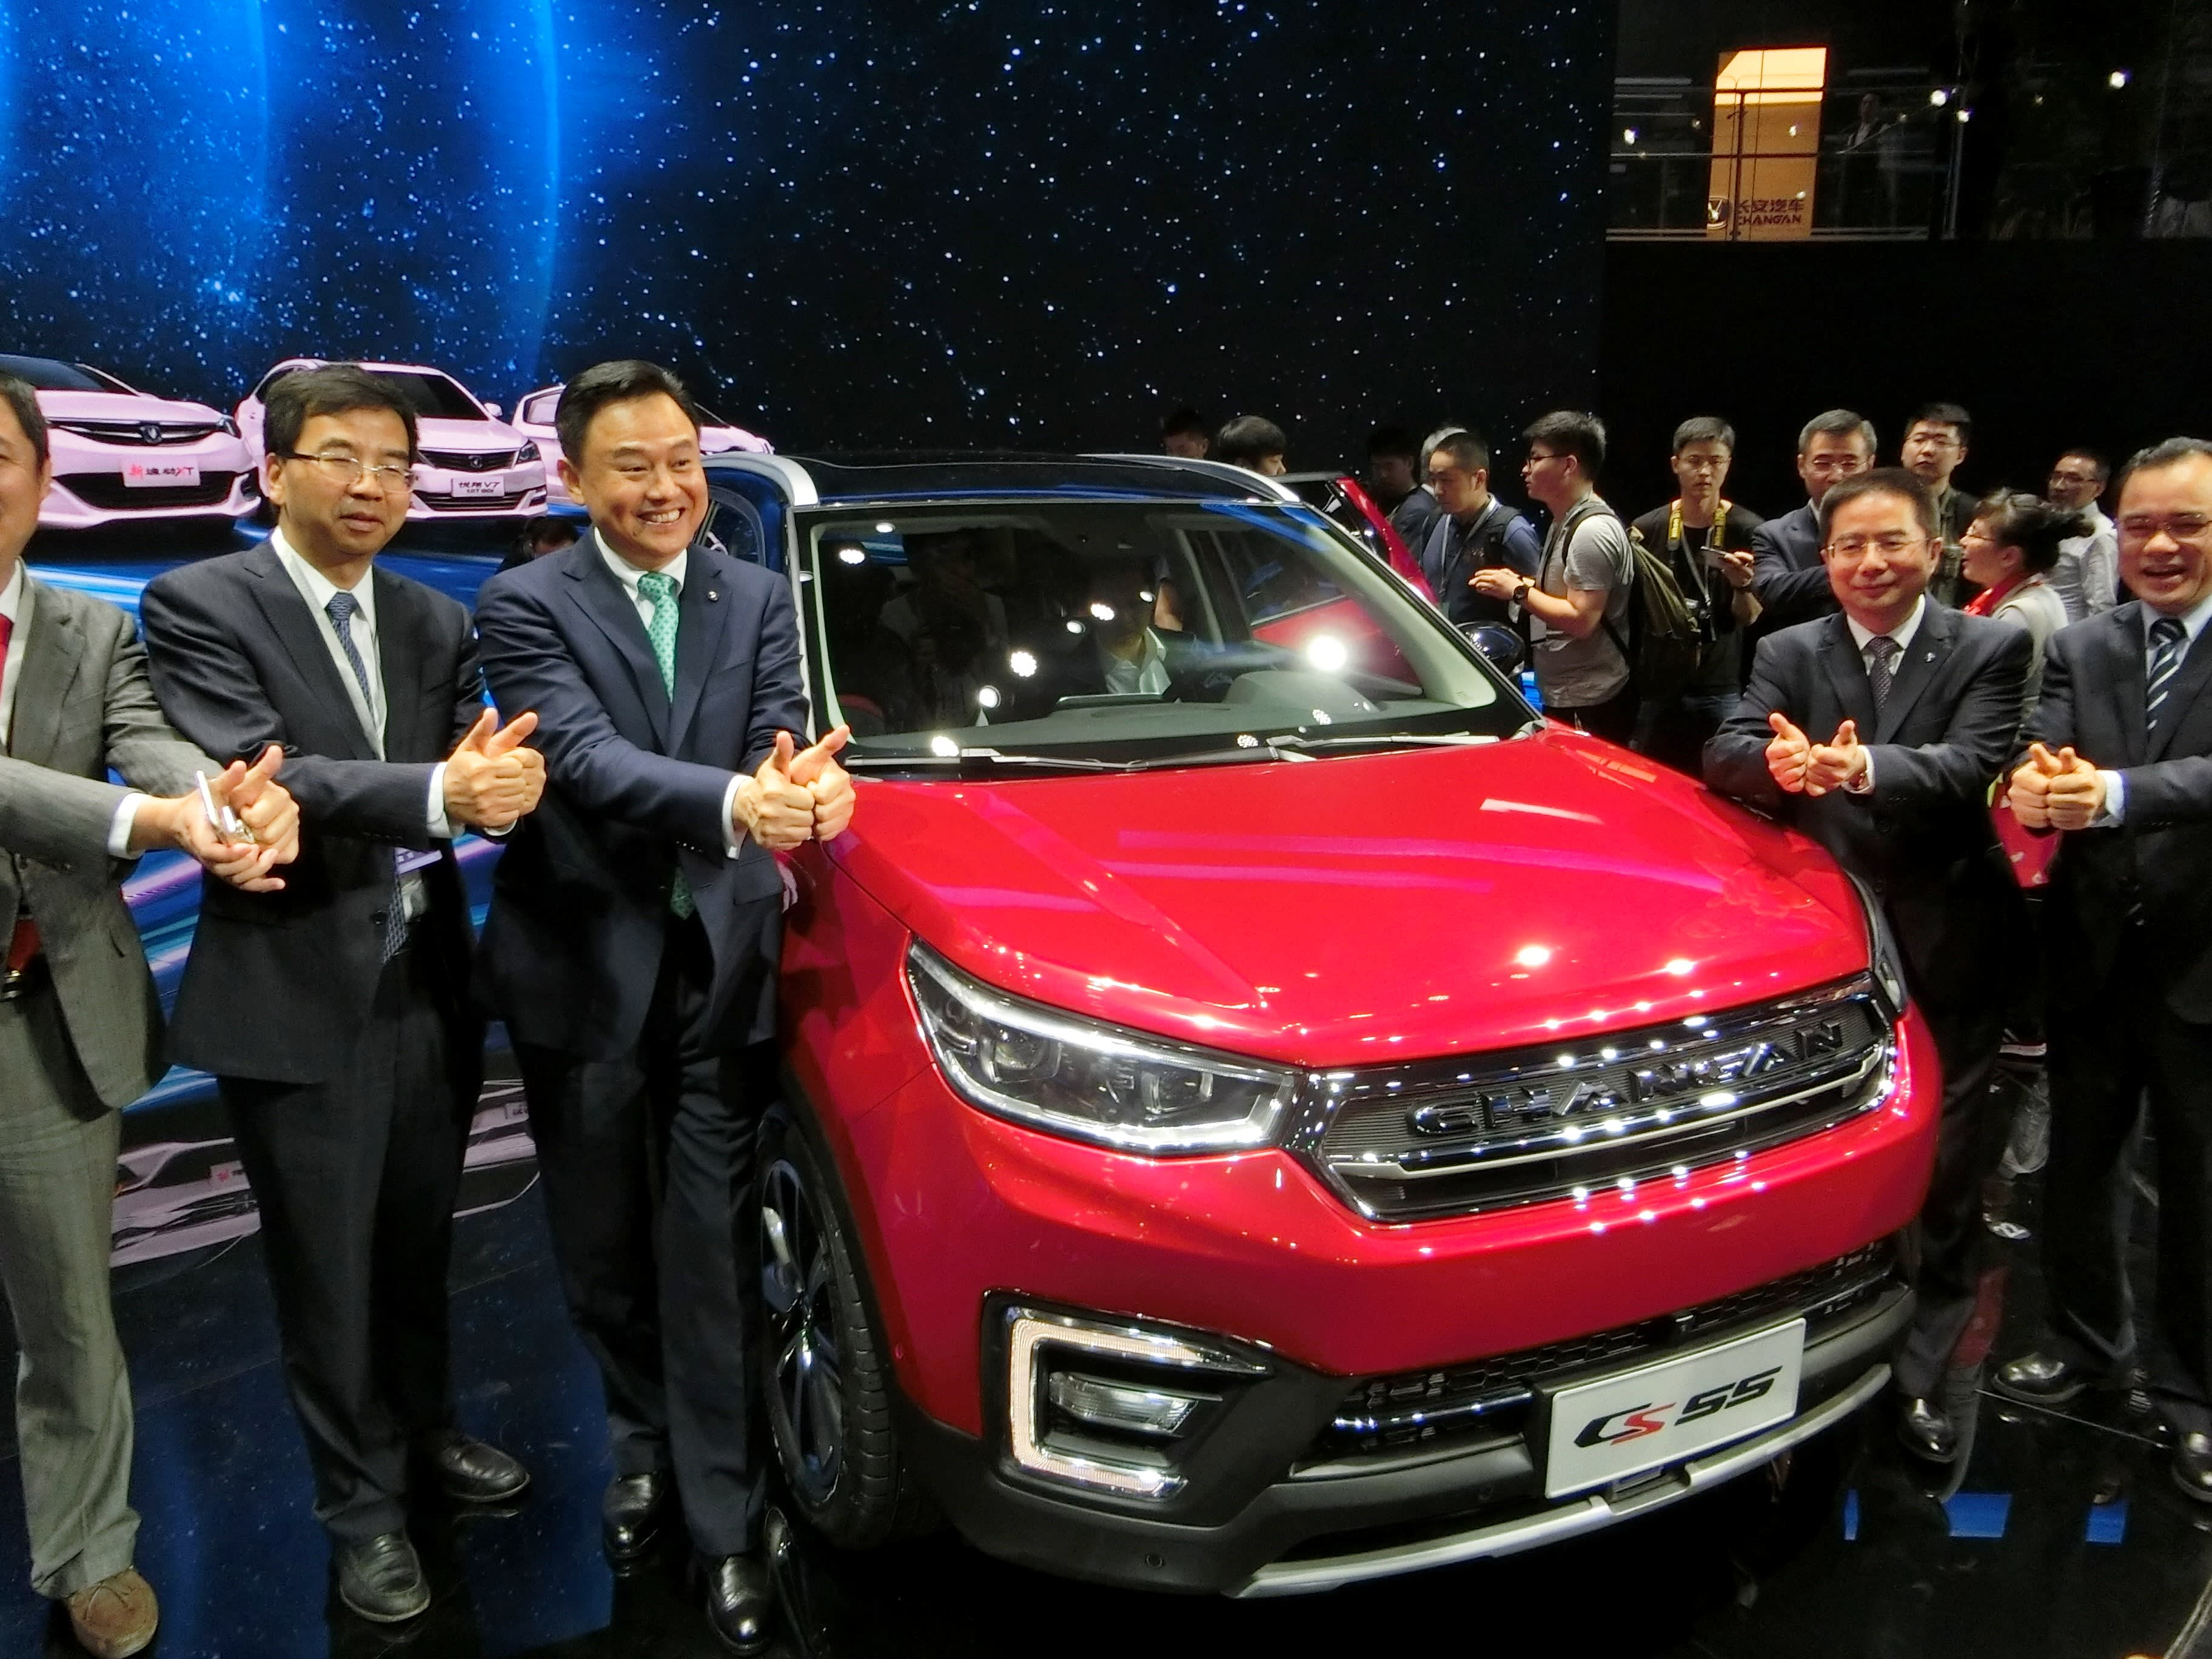 Chinese Auto Brands Moving Up The Ranks At Home Nikkei Asian Review